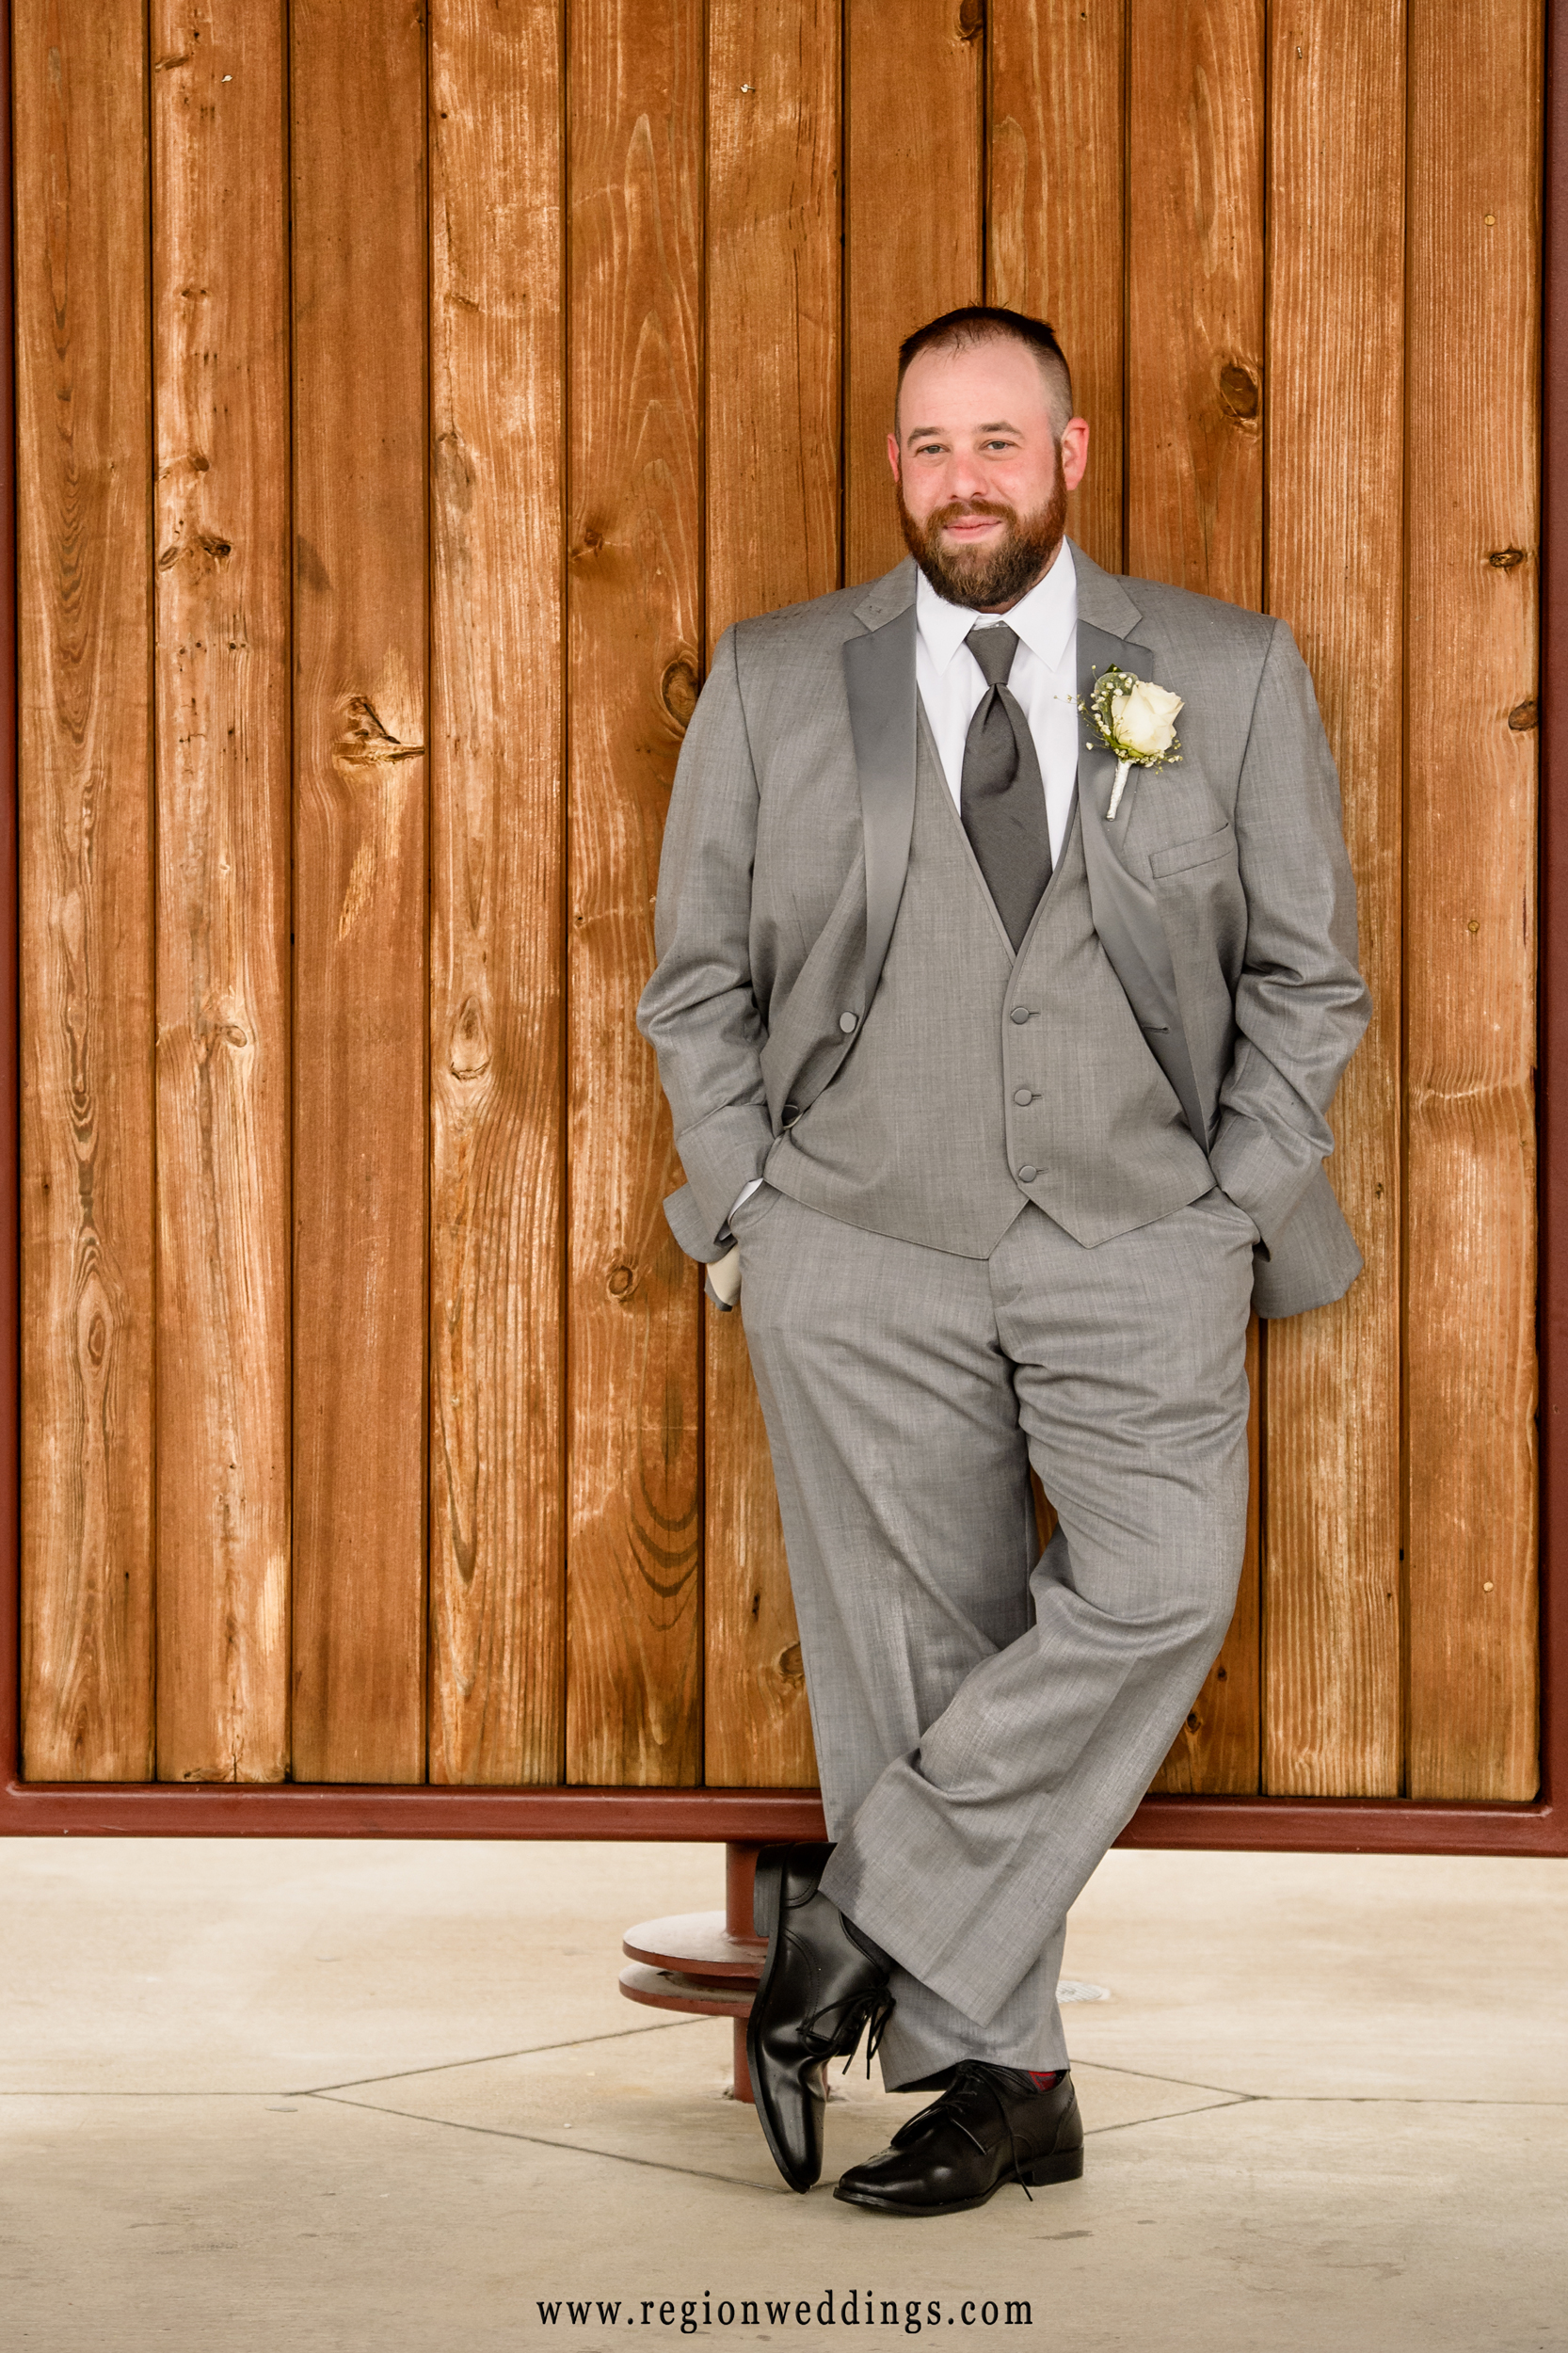 The groom leans against the wall of the amphitheater at Centennial Park.